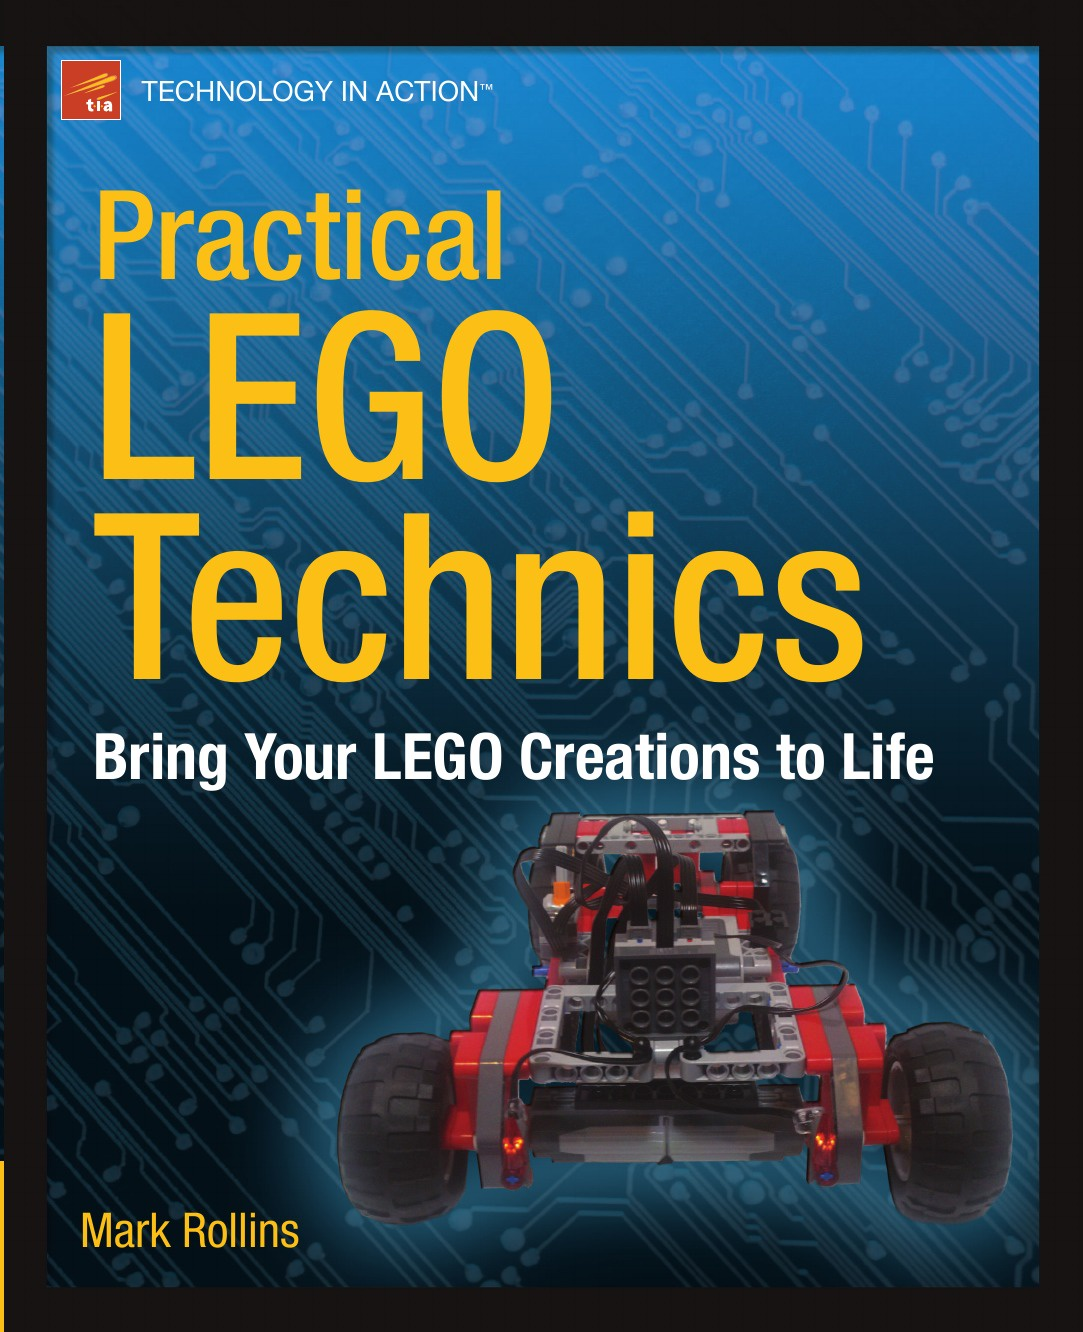 Mark Rollins Practical Lego Technics. Bring Your Lego Creations to Life